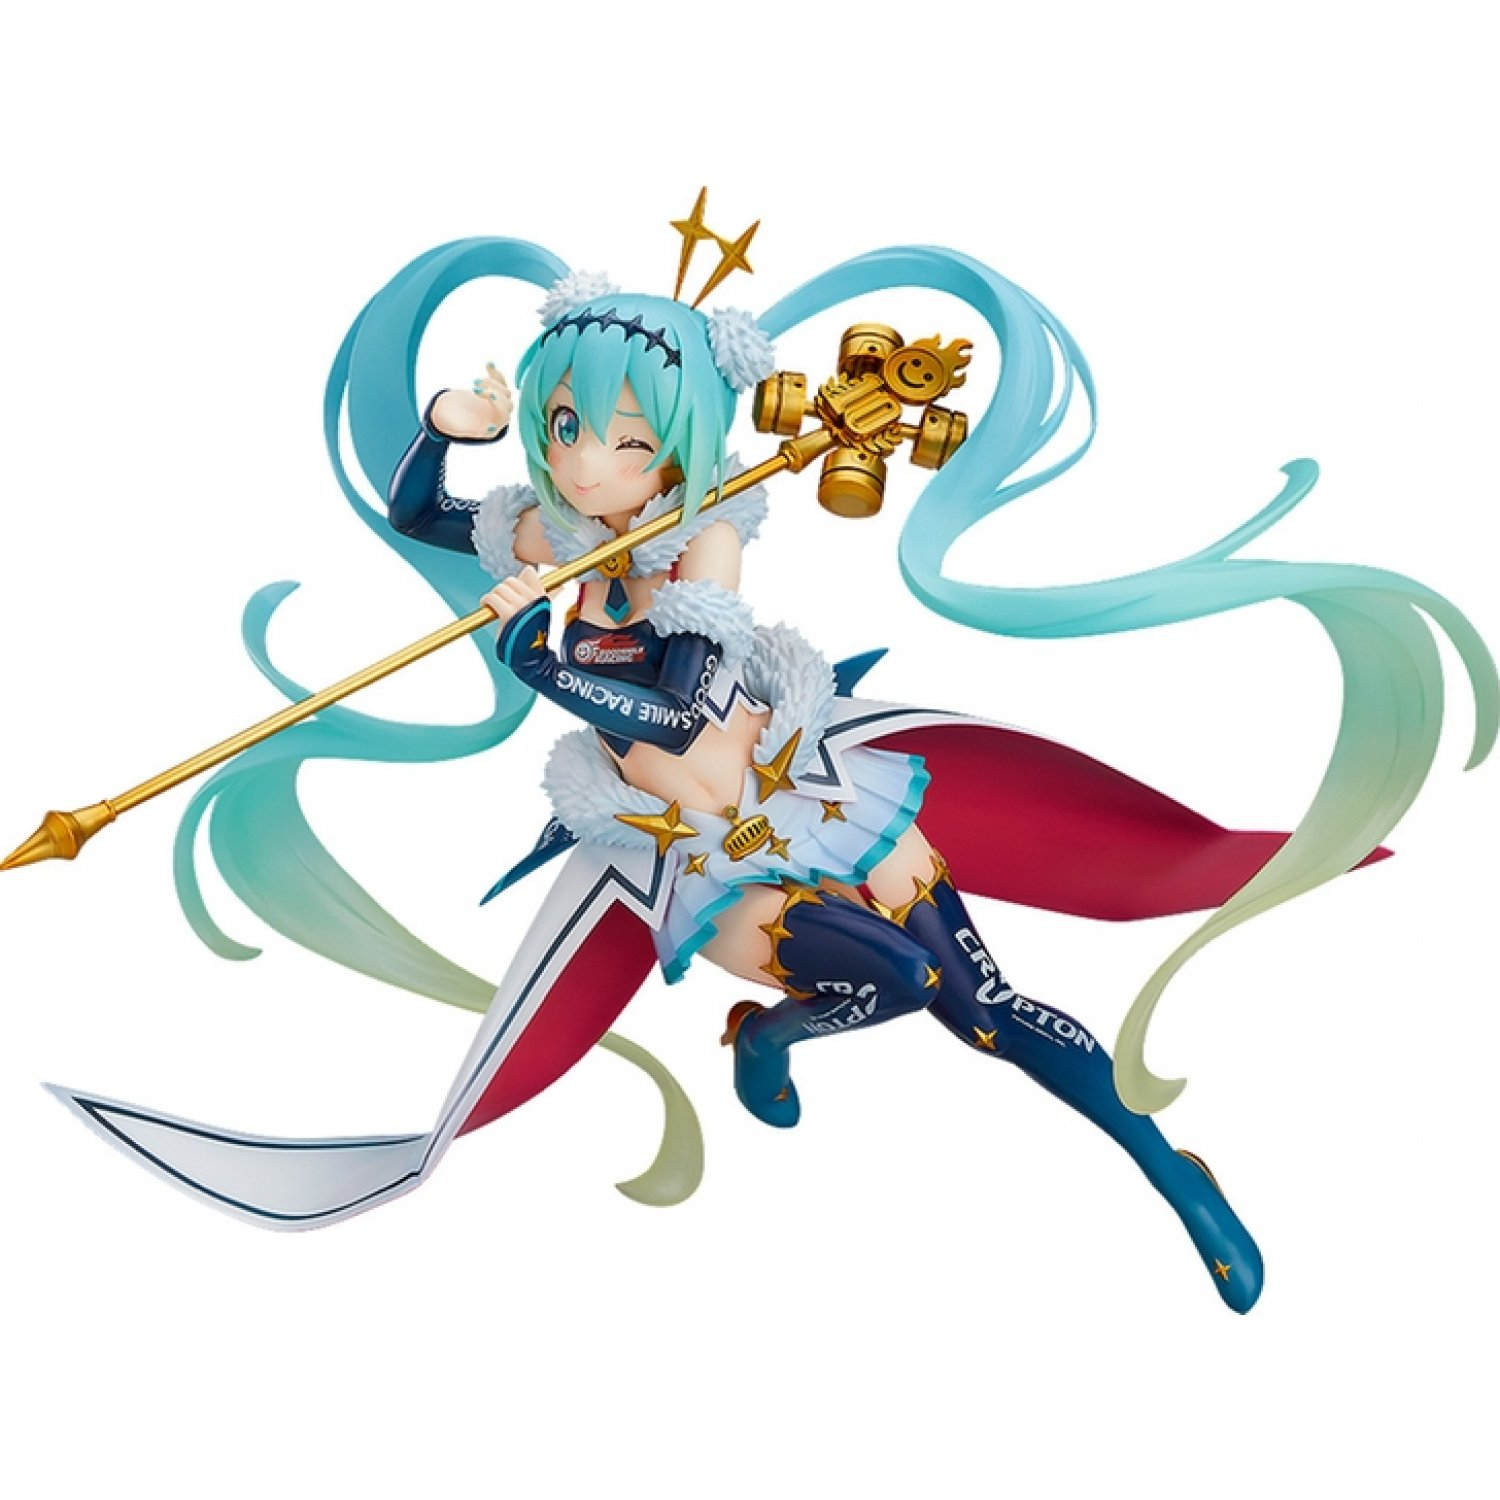 hatsune-miku-gt-project-17-scale-prepainted-figure-racing-miku-2-574353.1.jpg